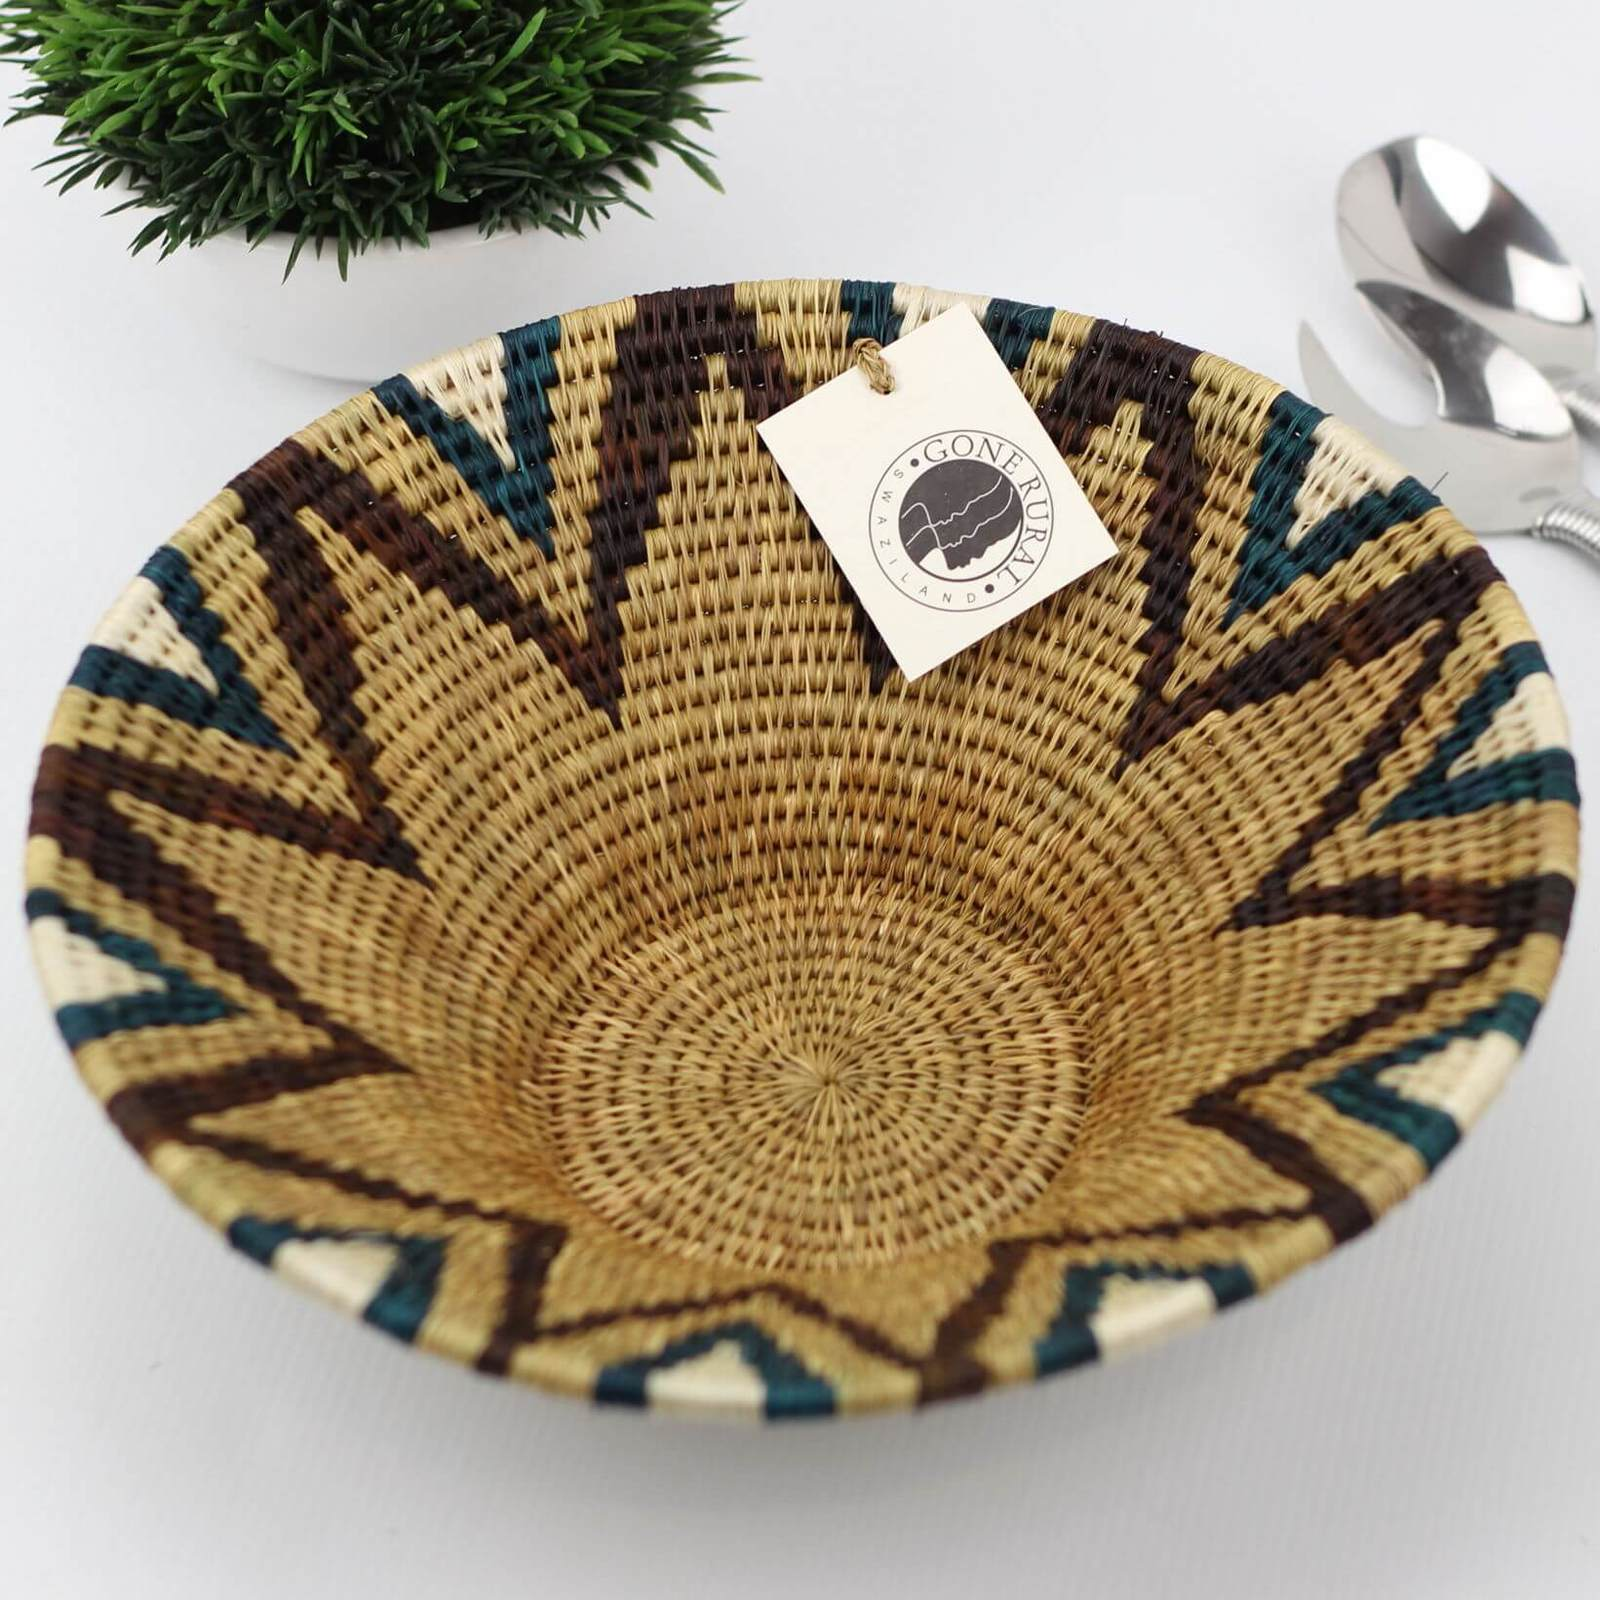 Gone Rural Swazi Basket Medium Teal (30cm)